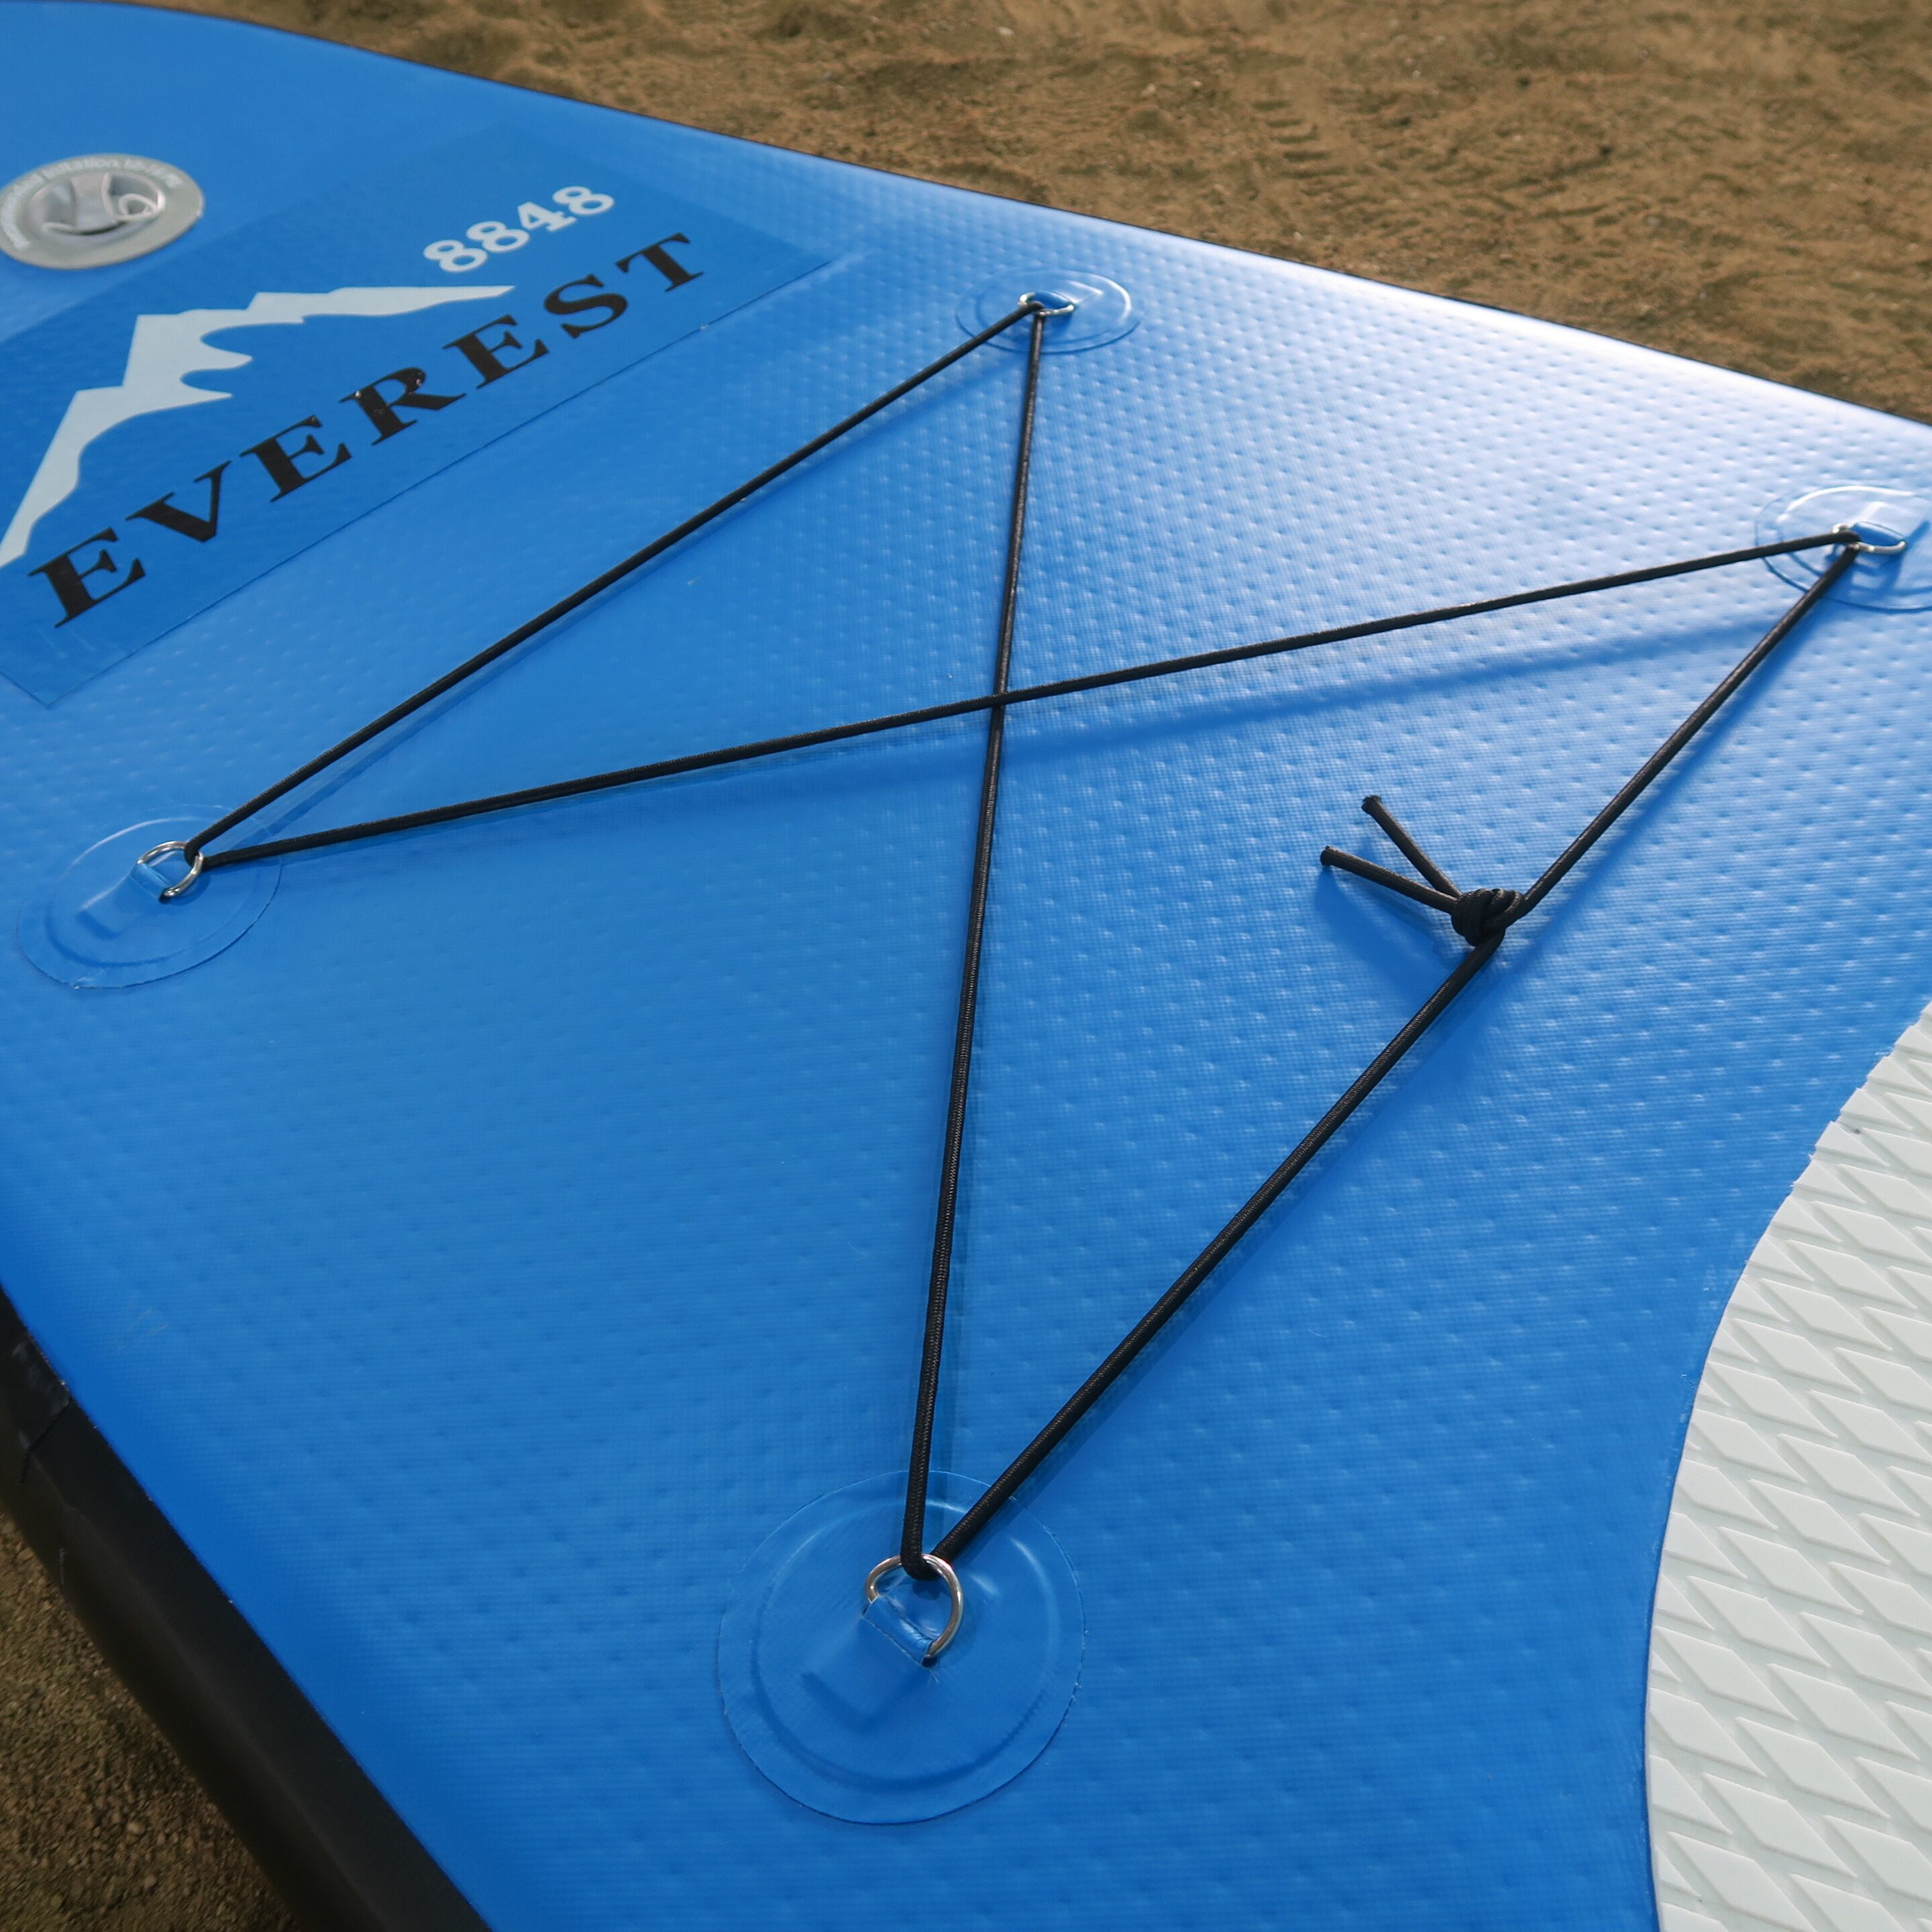 Inflatable 305 Cm Stand Up Paddle Board